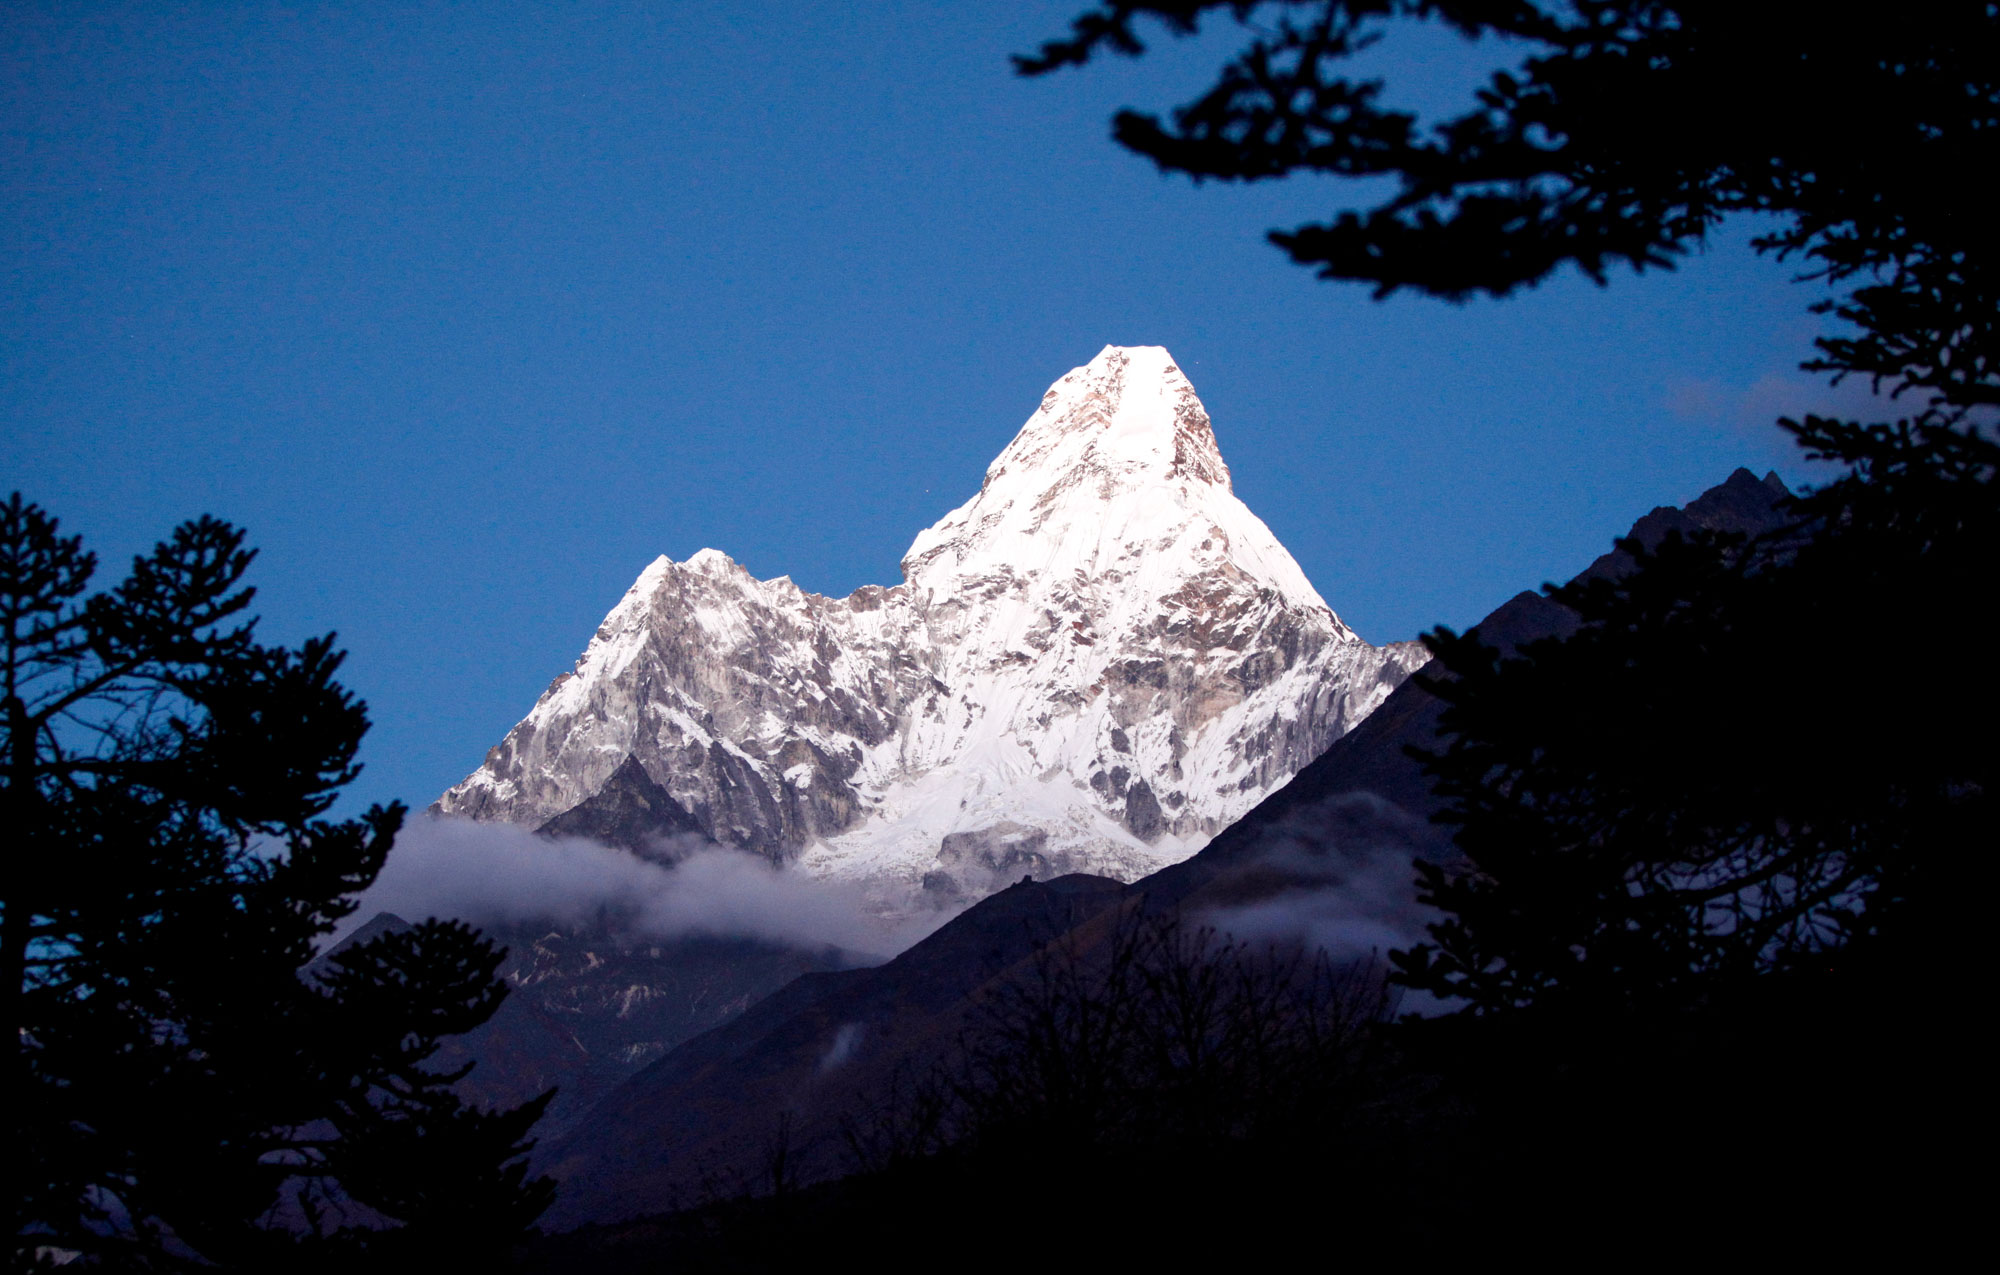 Ama Dablam mountain from far distance surrounded by dark trees near sunset | Hamalayas | Travel Photography | Trekking